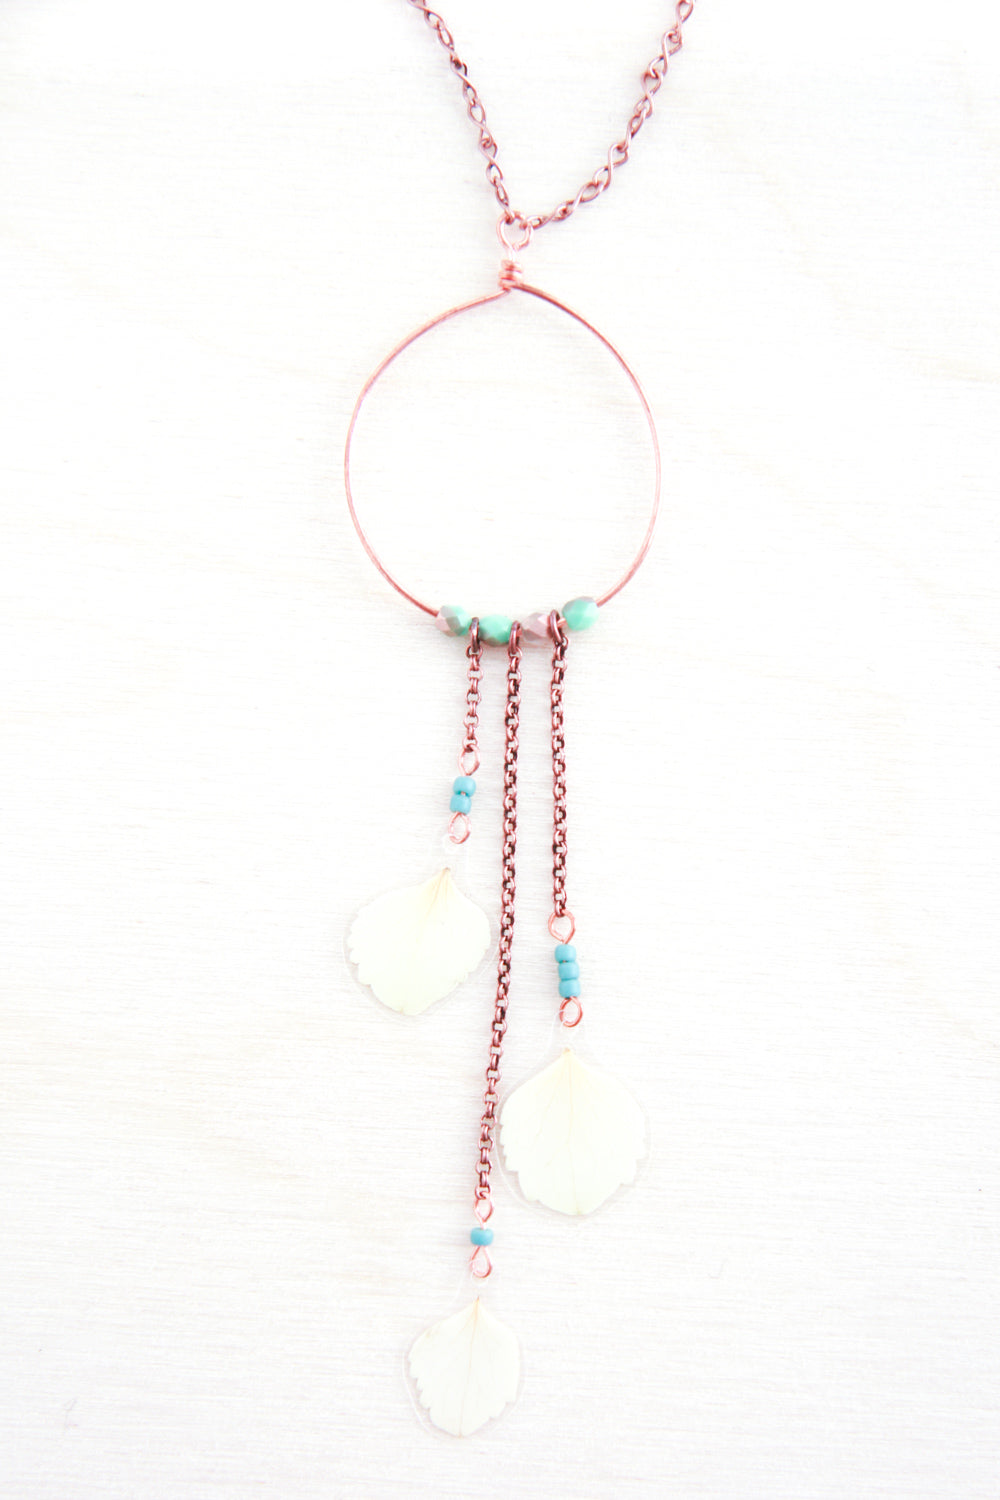 White Hydrangea Pressed Flower Necklace with Copper Hoop & Glass Beads